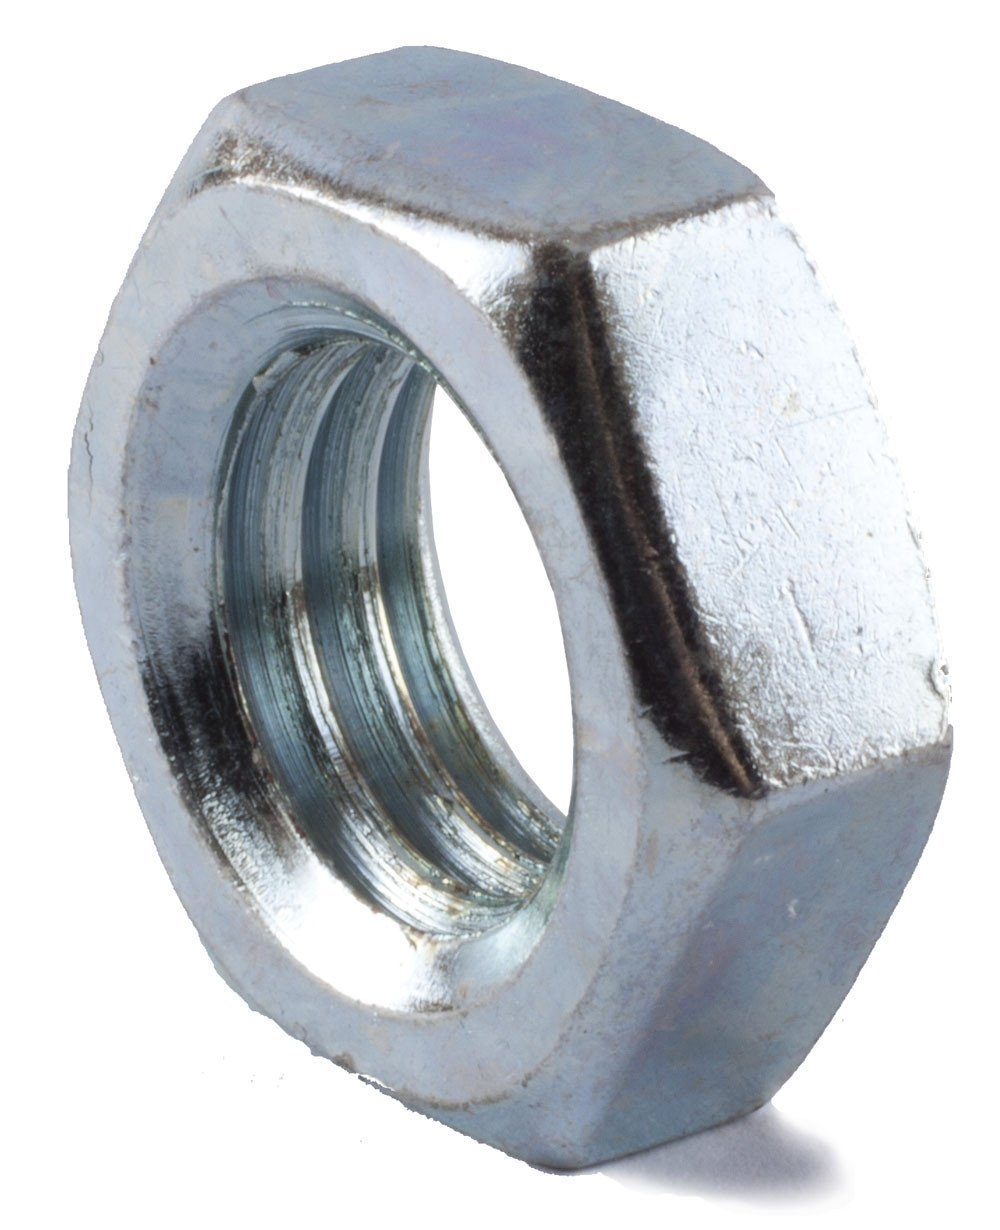 7/8-14 Hex Jam Nut Zinc Plated (15)